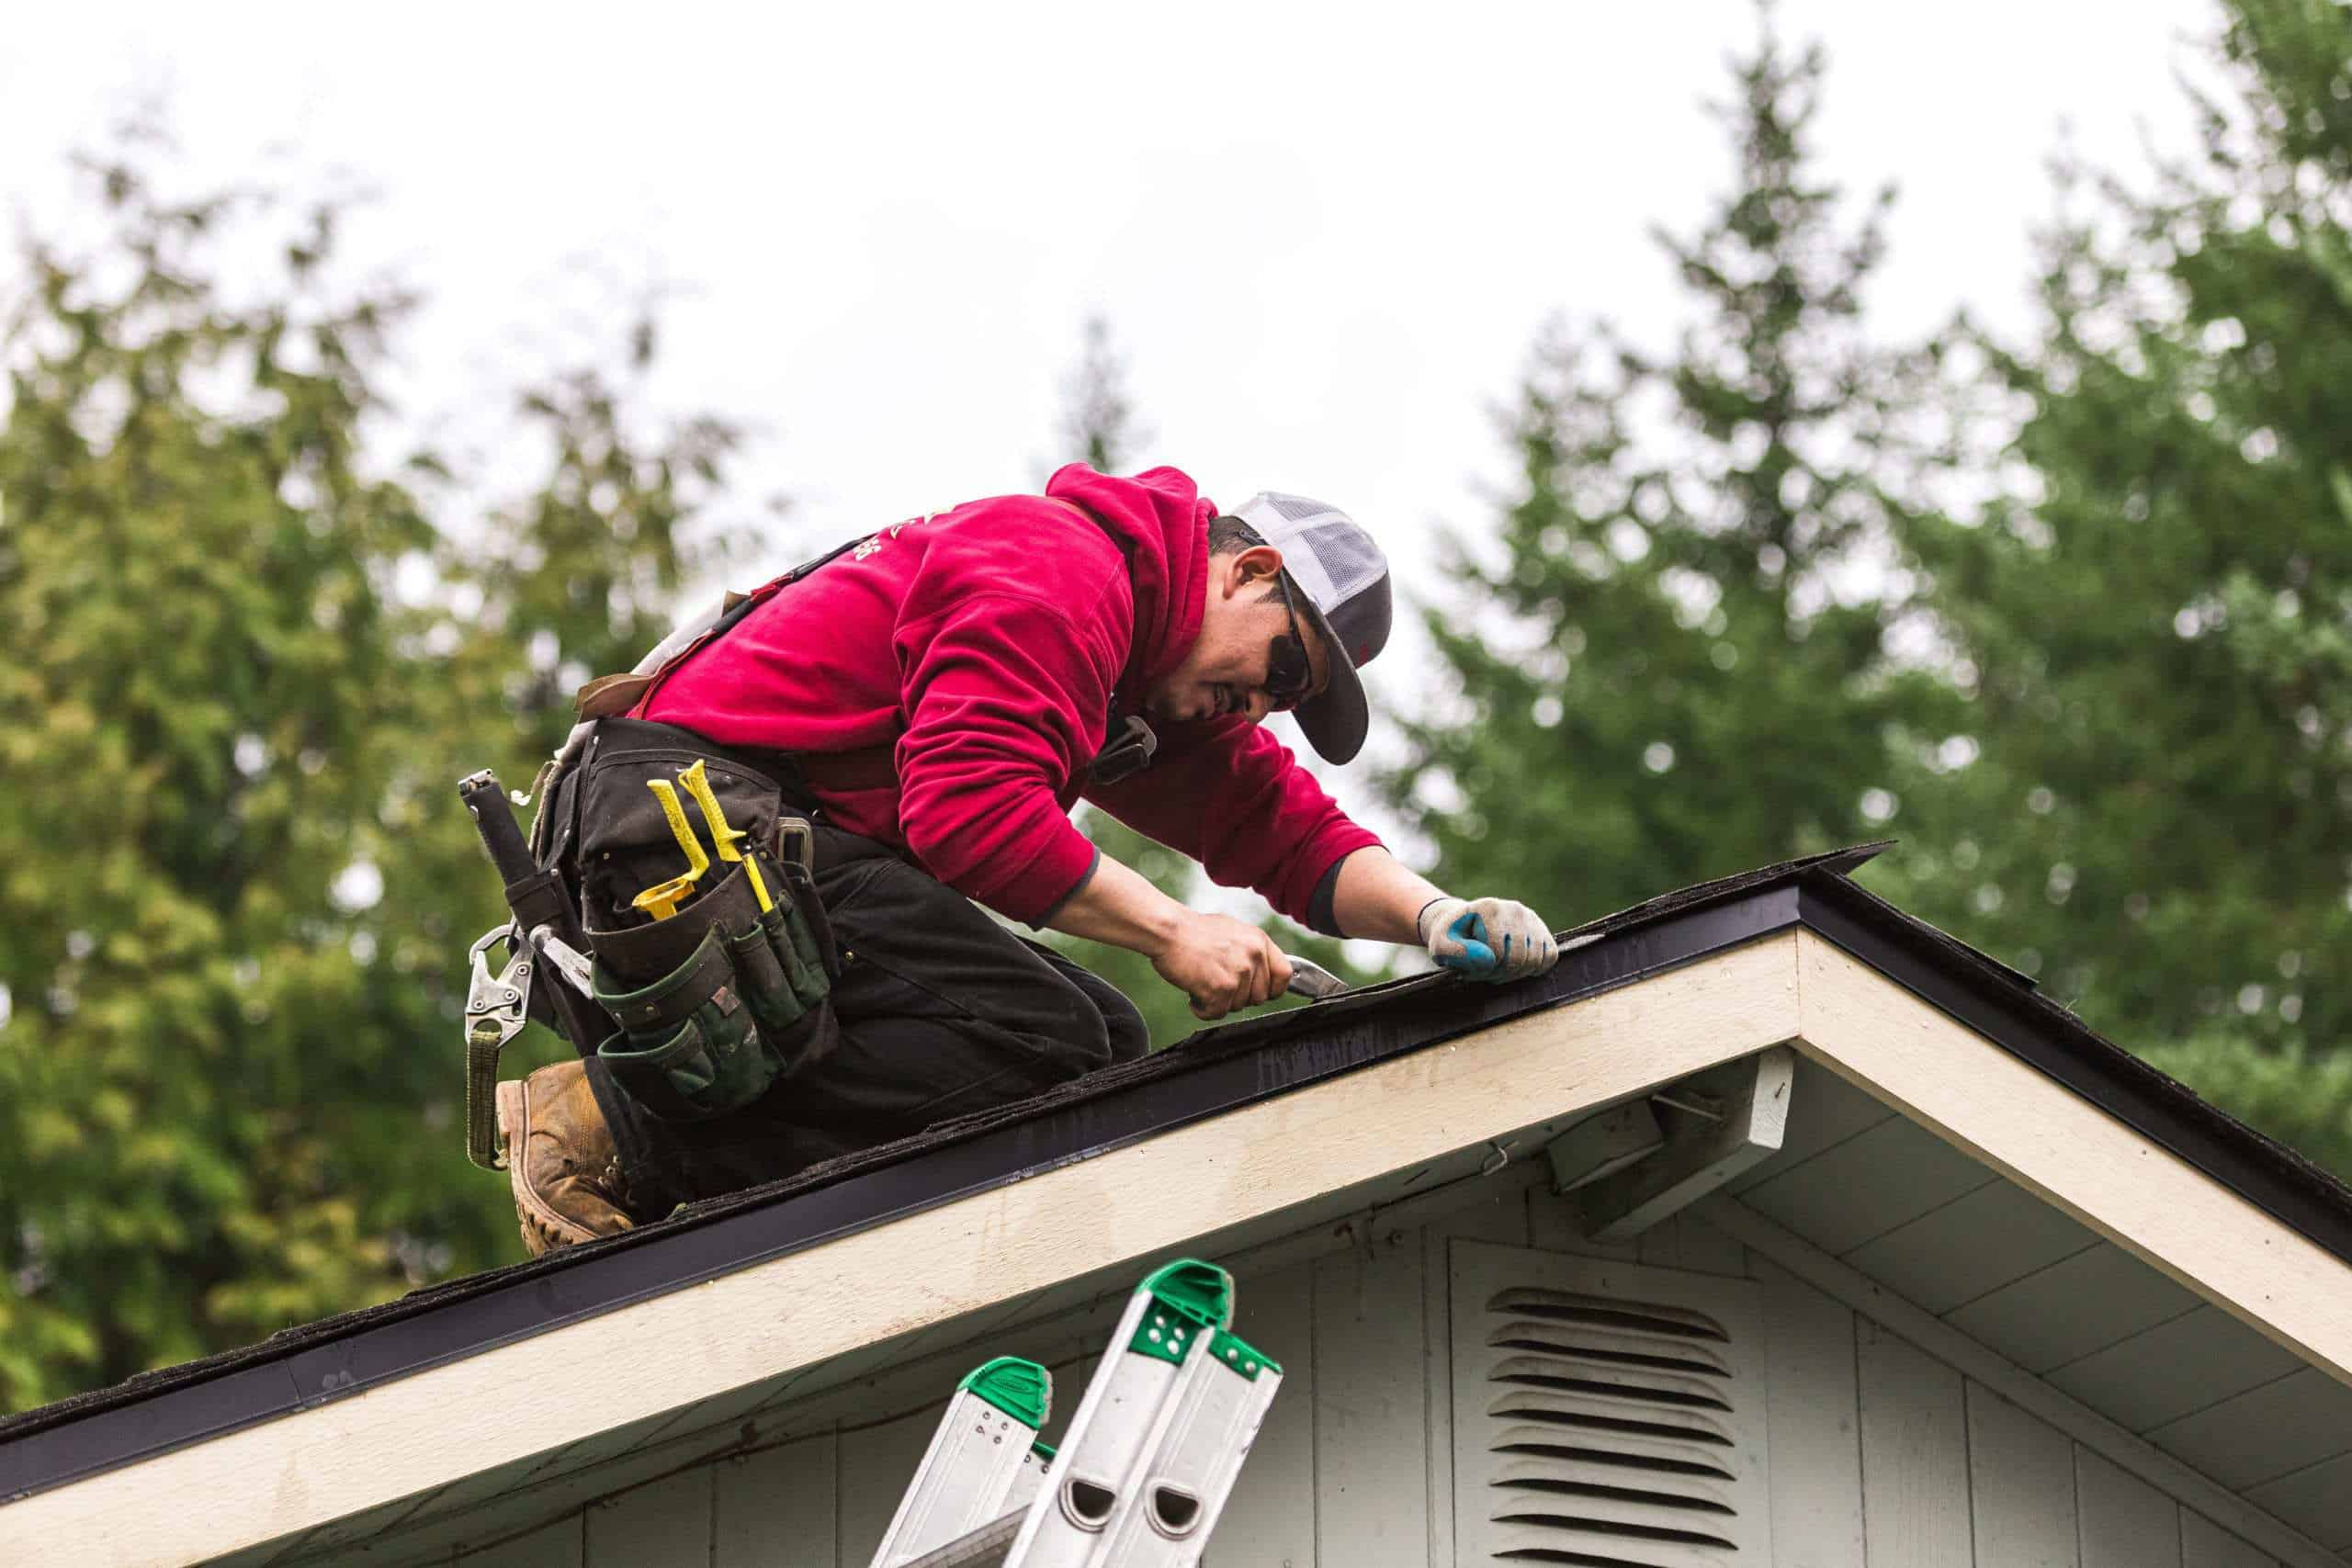 A man kneeling on top of a roof next to the edge. He is using an utility knife to trim the edge of the roof shingles.